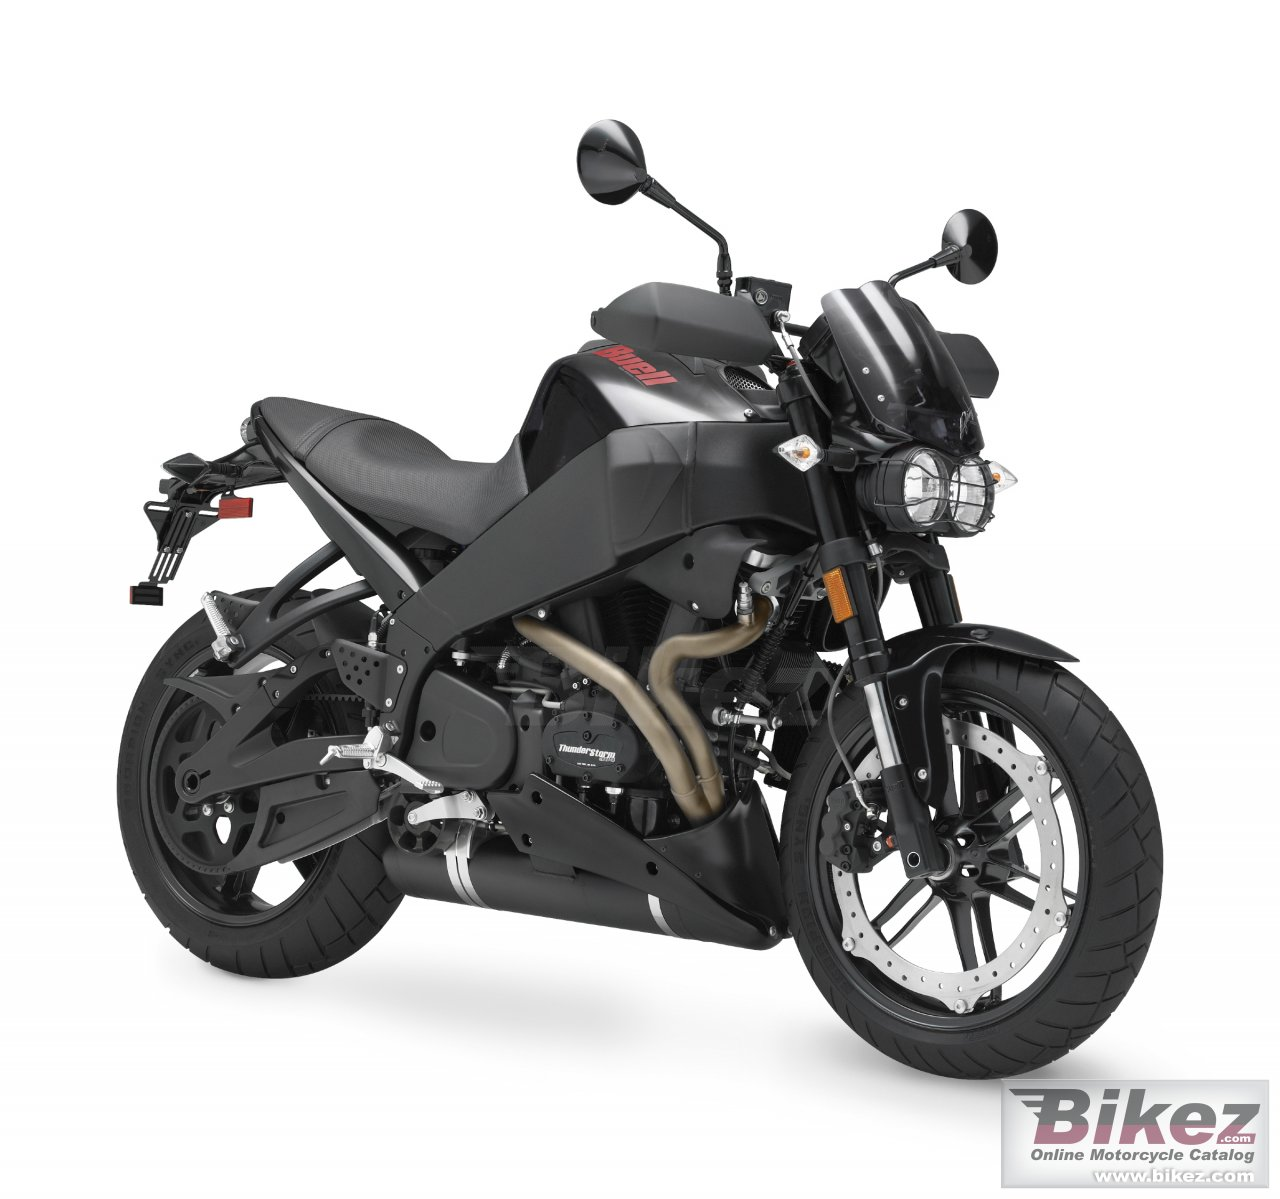 Big Buell xb9sx lightning picture and wallpaper from Bikez.com